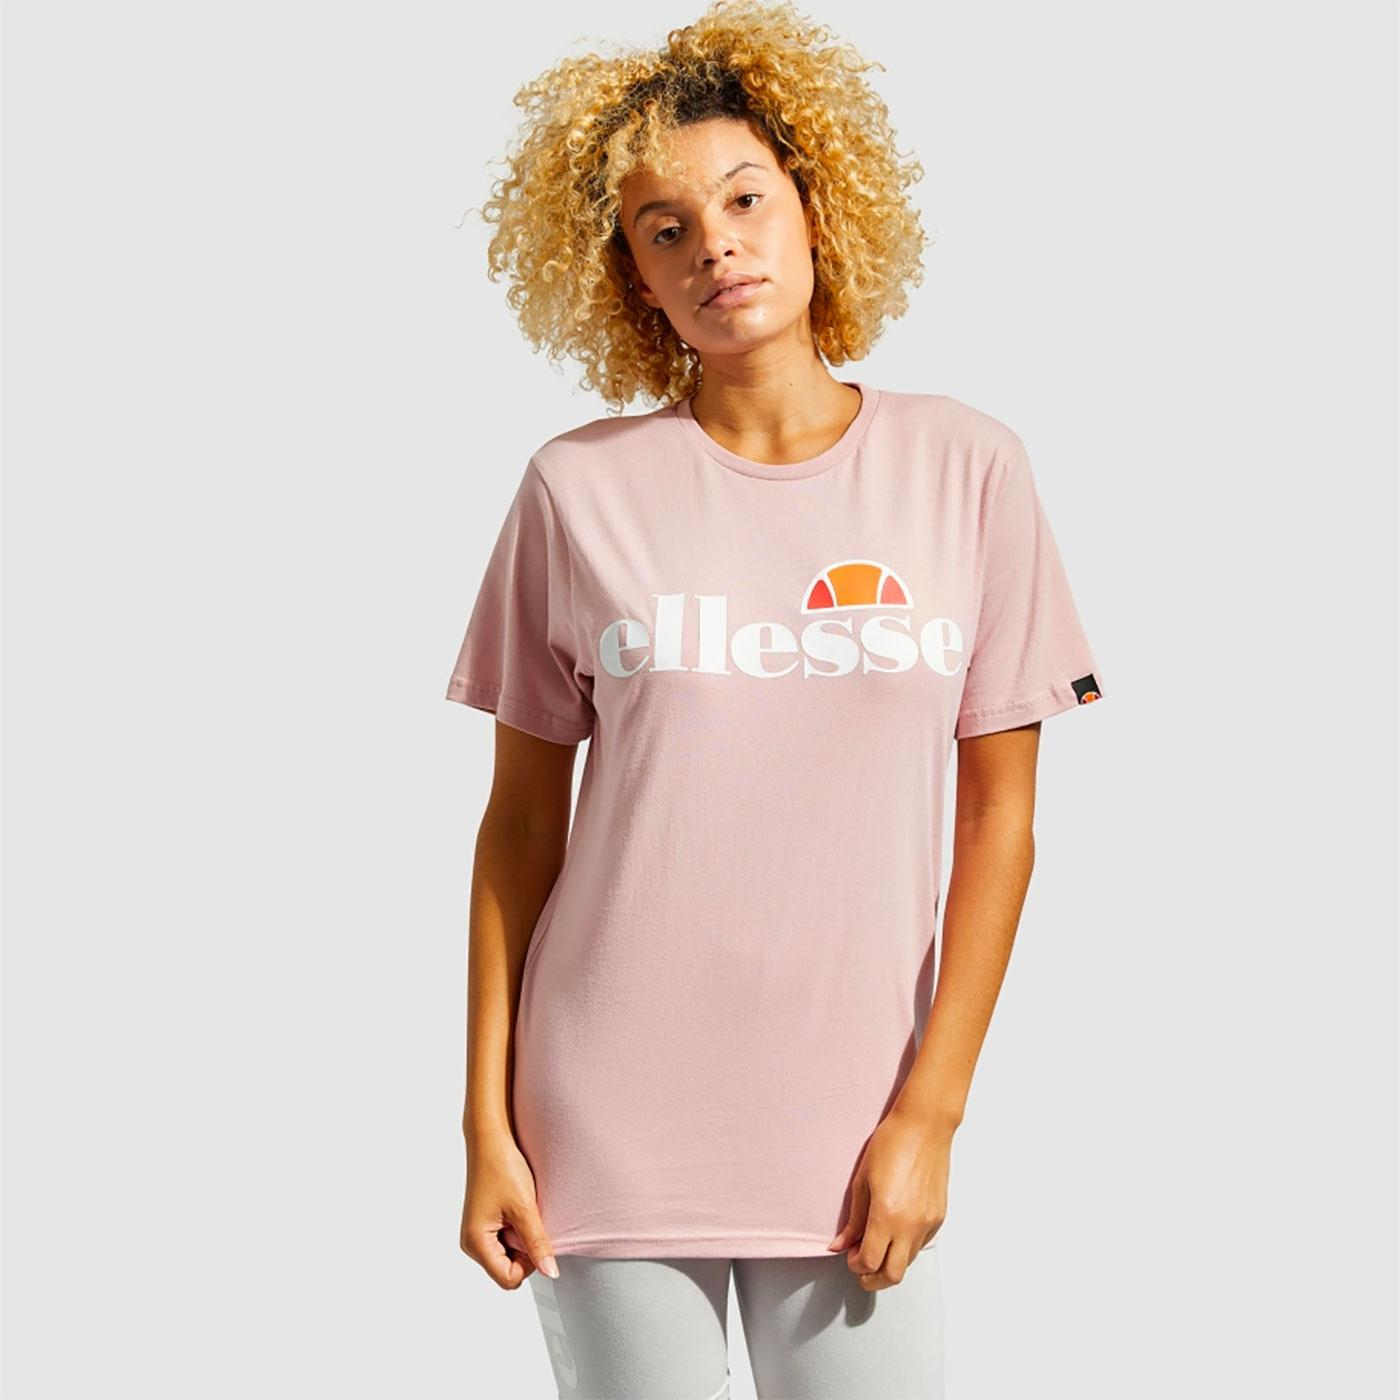 Albany ELLESSE Women's Retro Relaxed Fit Tee PINK